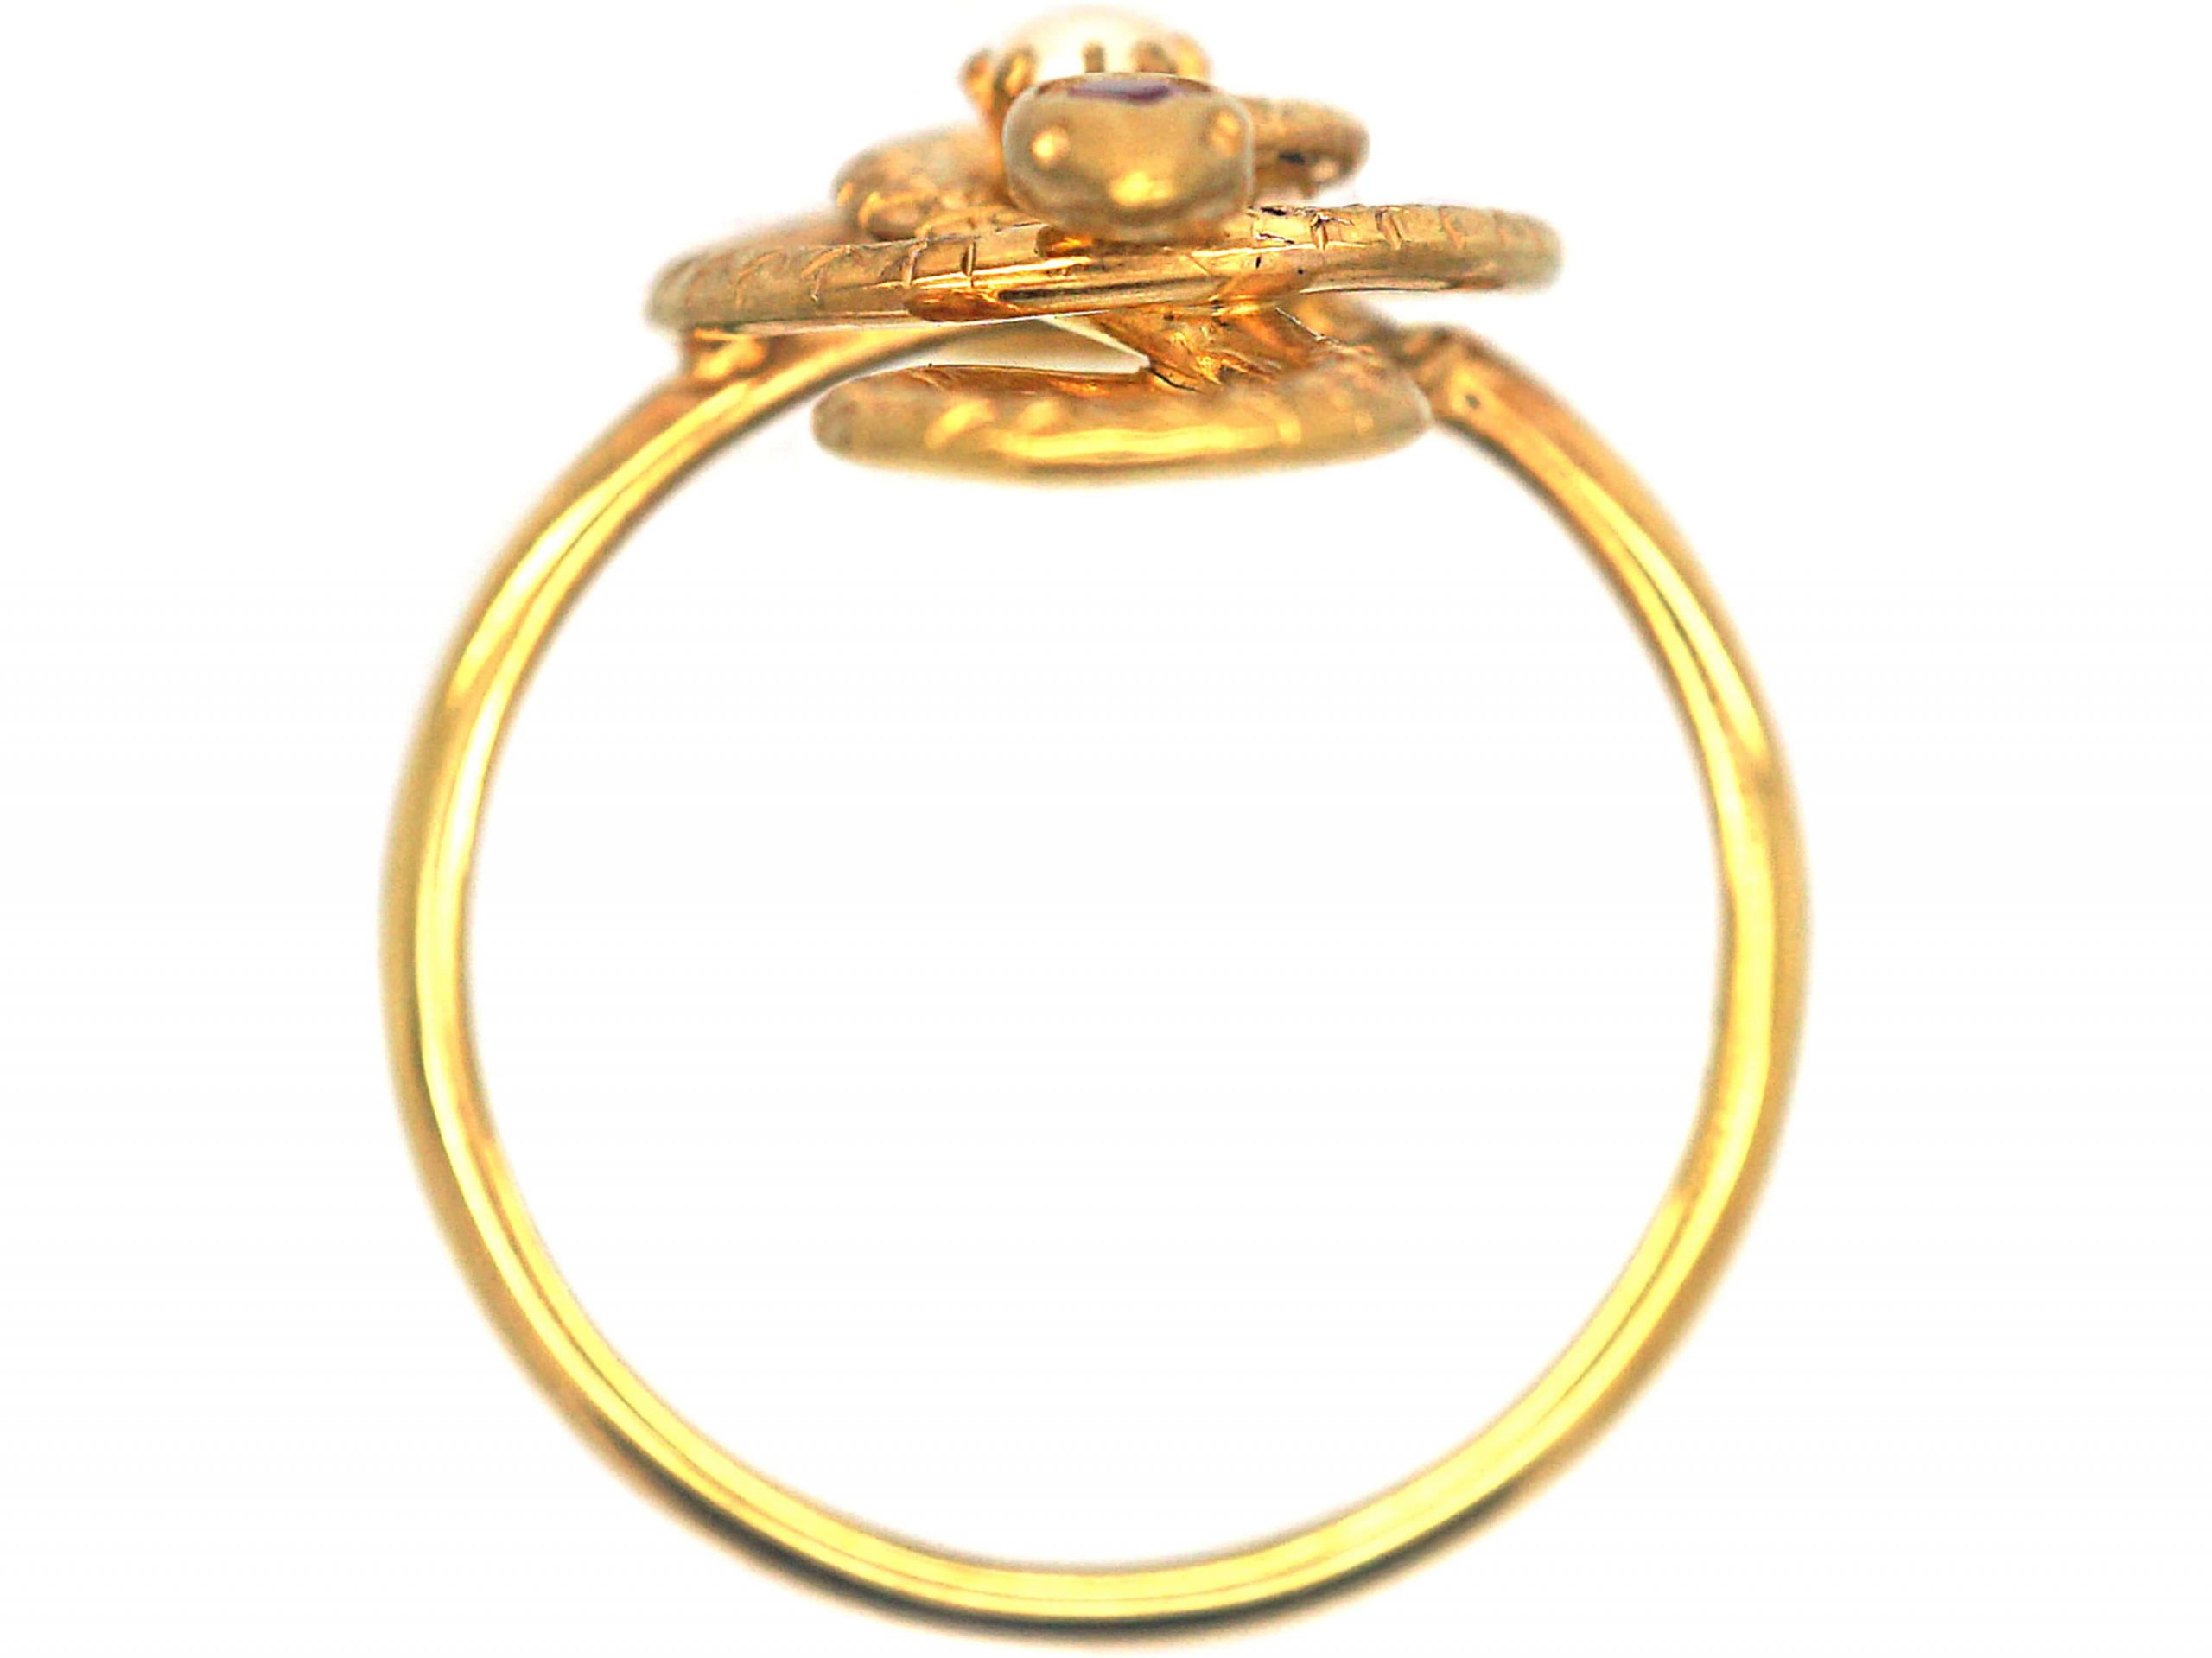 Edwardian 14ct Gold Snake Ring set with  Natural Split Pearl & a Ruby